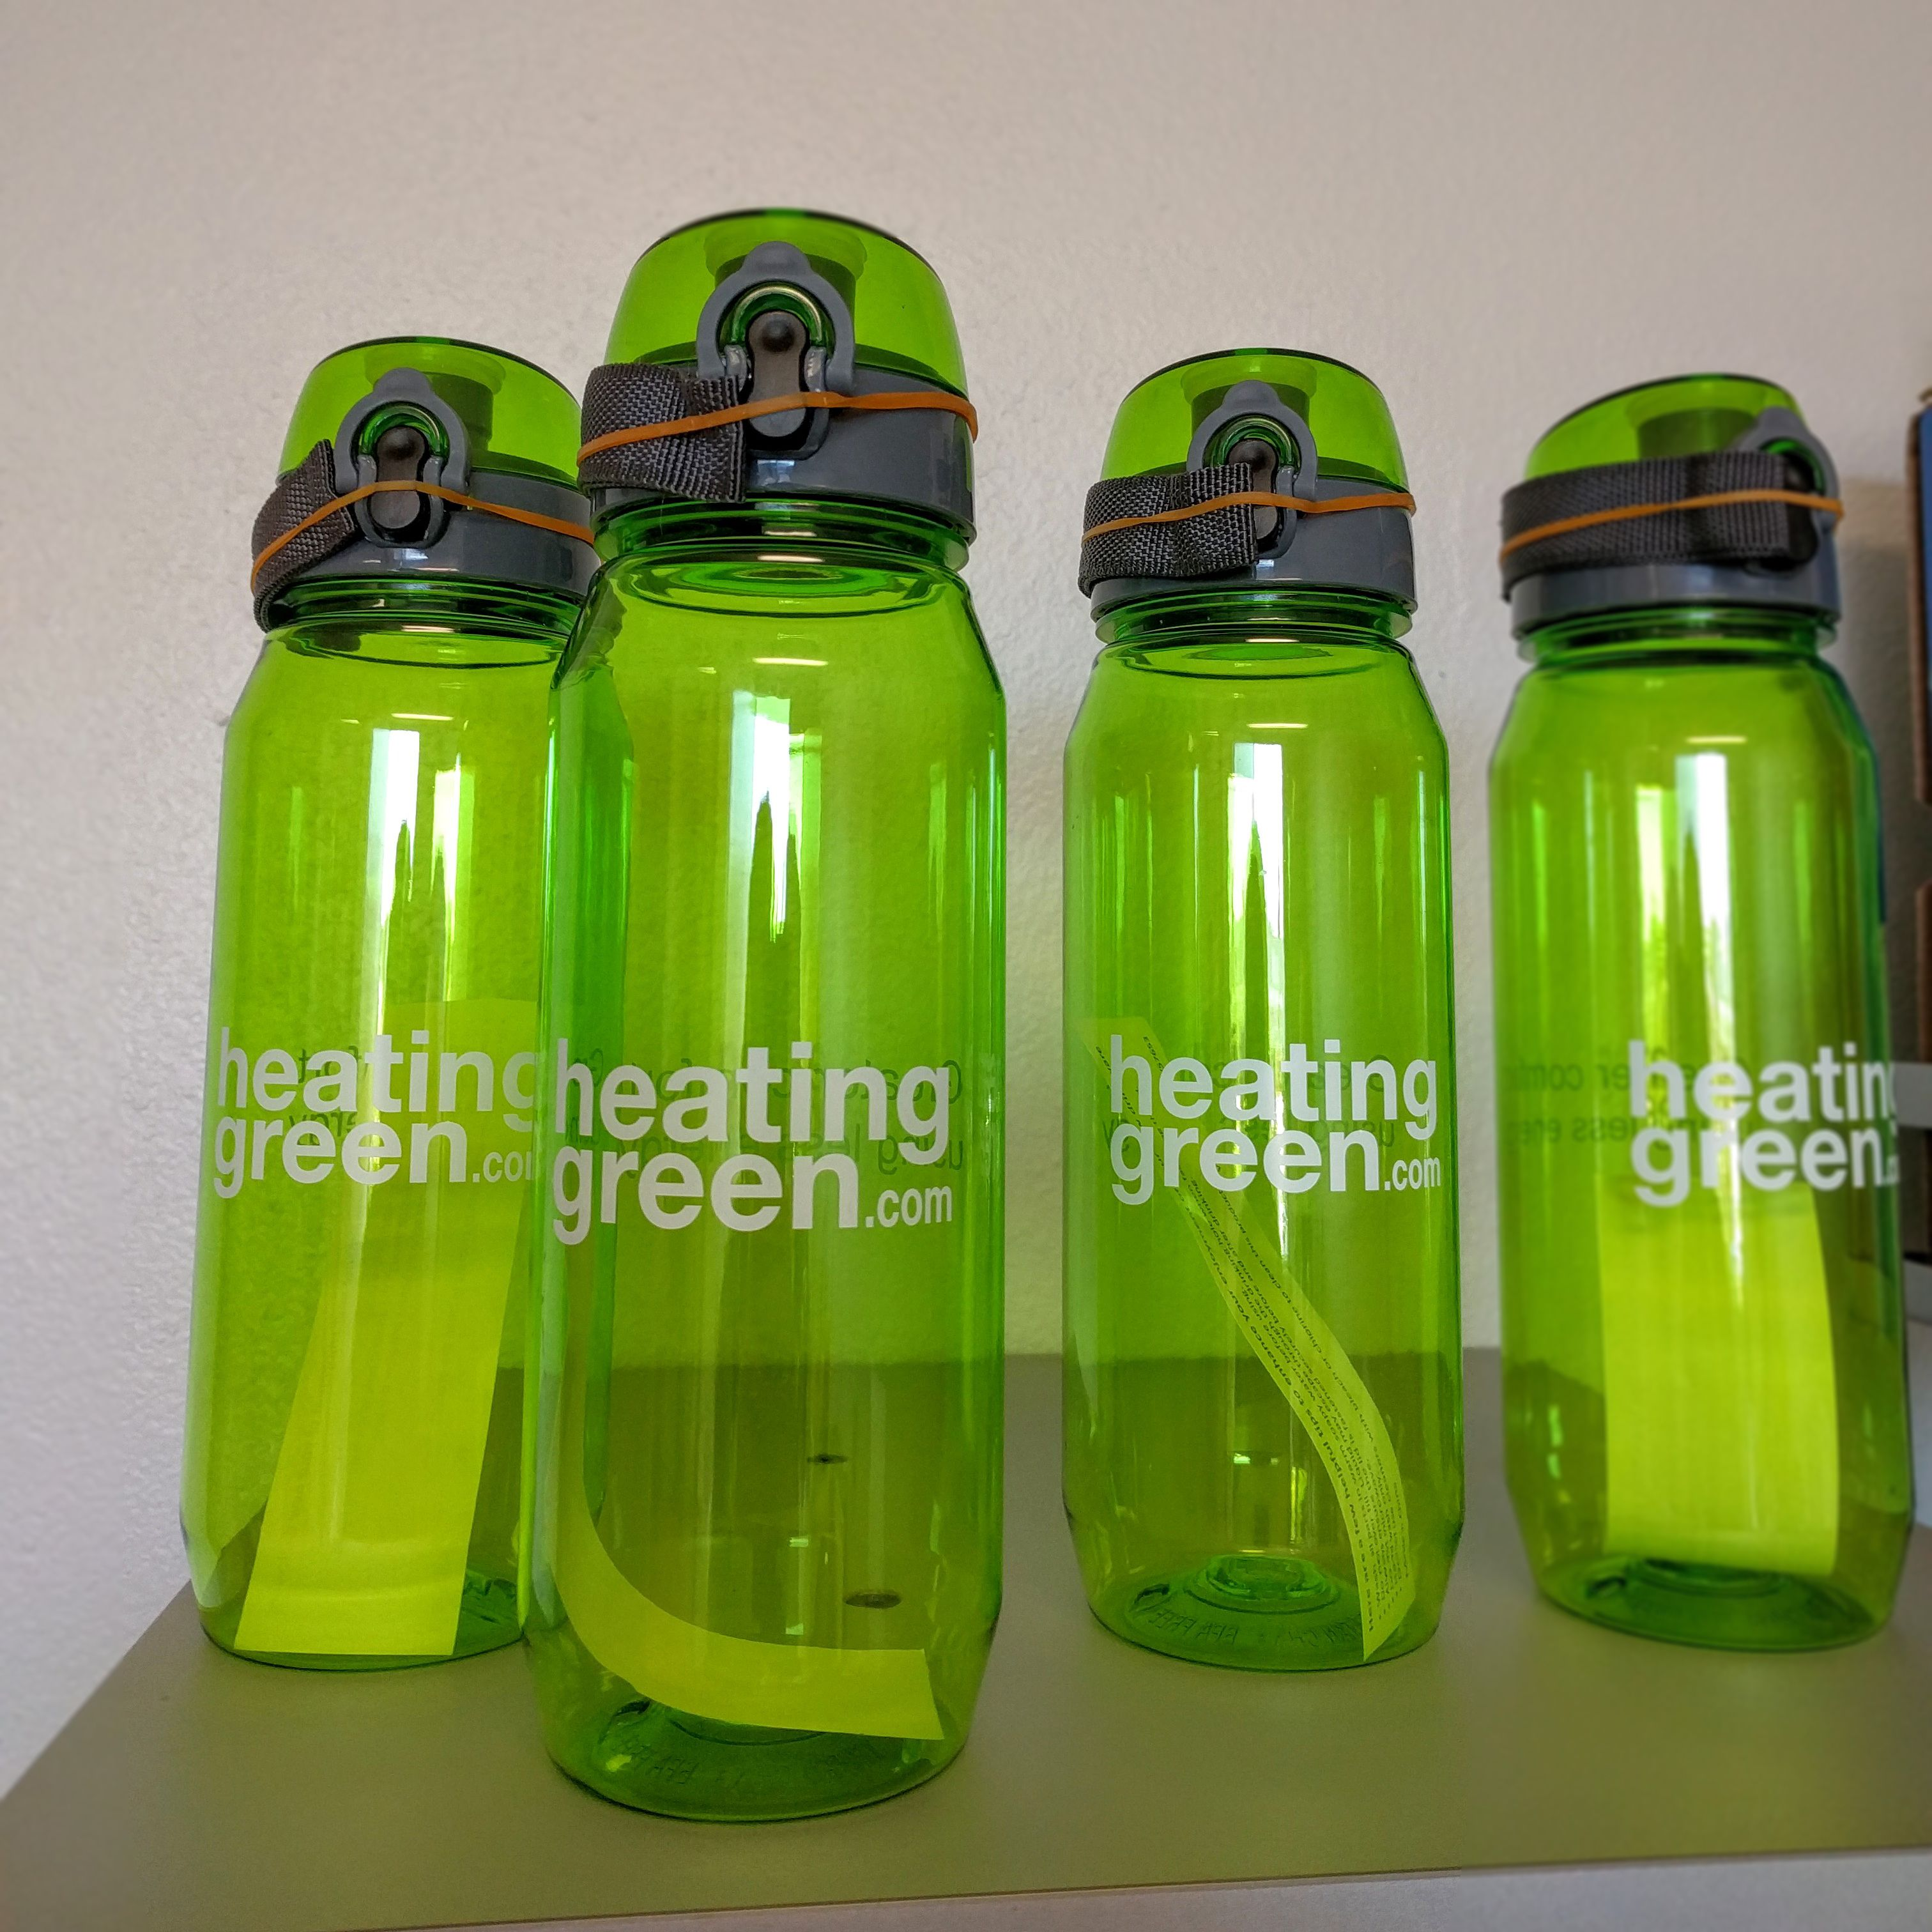 Got another order of Heating Green water bottles in this week! Will be sending to all our customers with orders over $500. This week our bottles are being sent as far as Romania and Singapore, as well as across the U.S. Thank you to all who have selected Heating Green for heating systems.